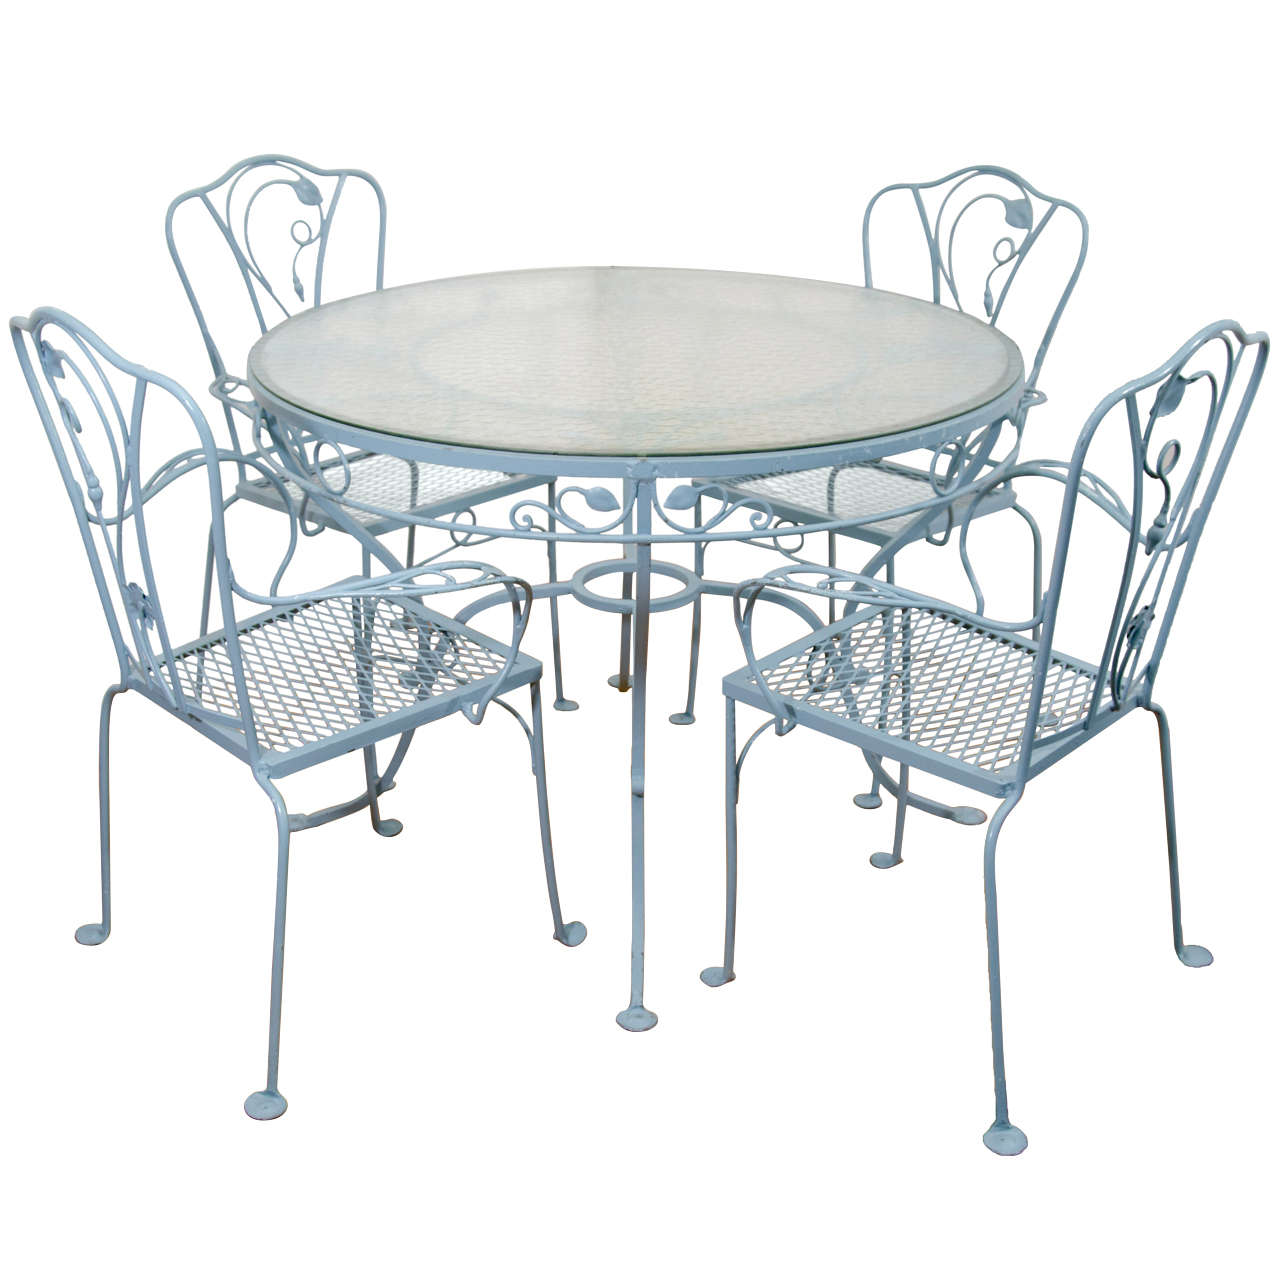 Superior Rod Iron Table And Chairs Part - 13: Vintage Salterini Wrought Iron Table And Chairs In Powder Blue 1